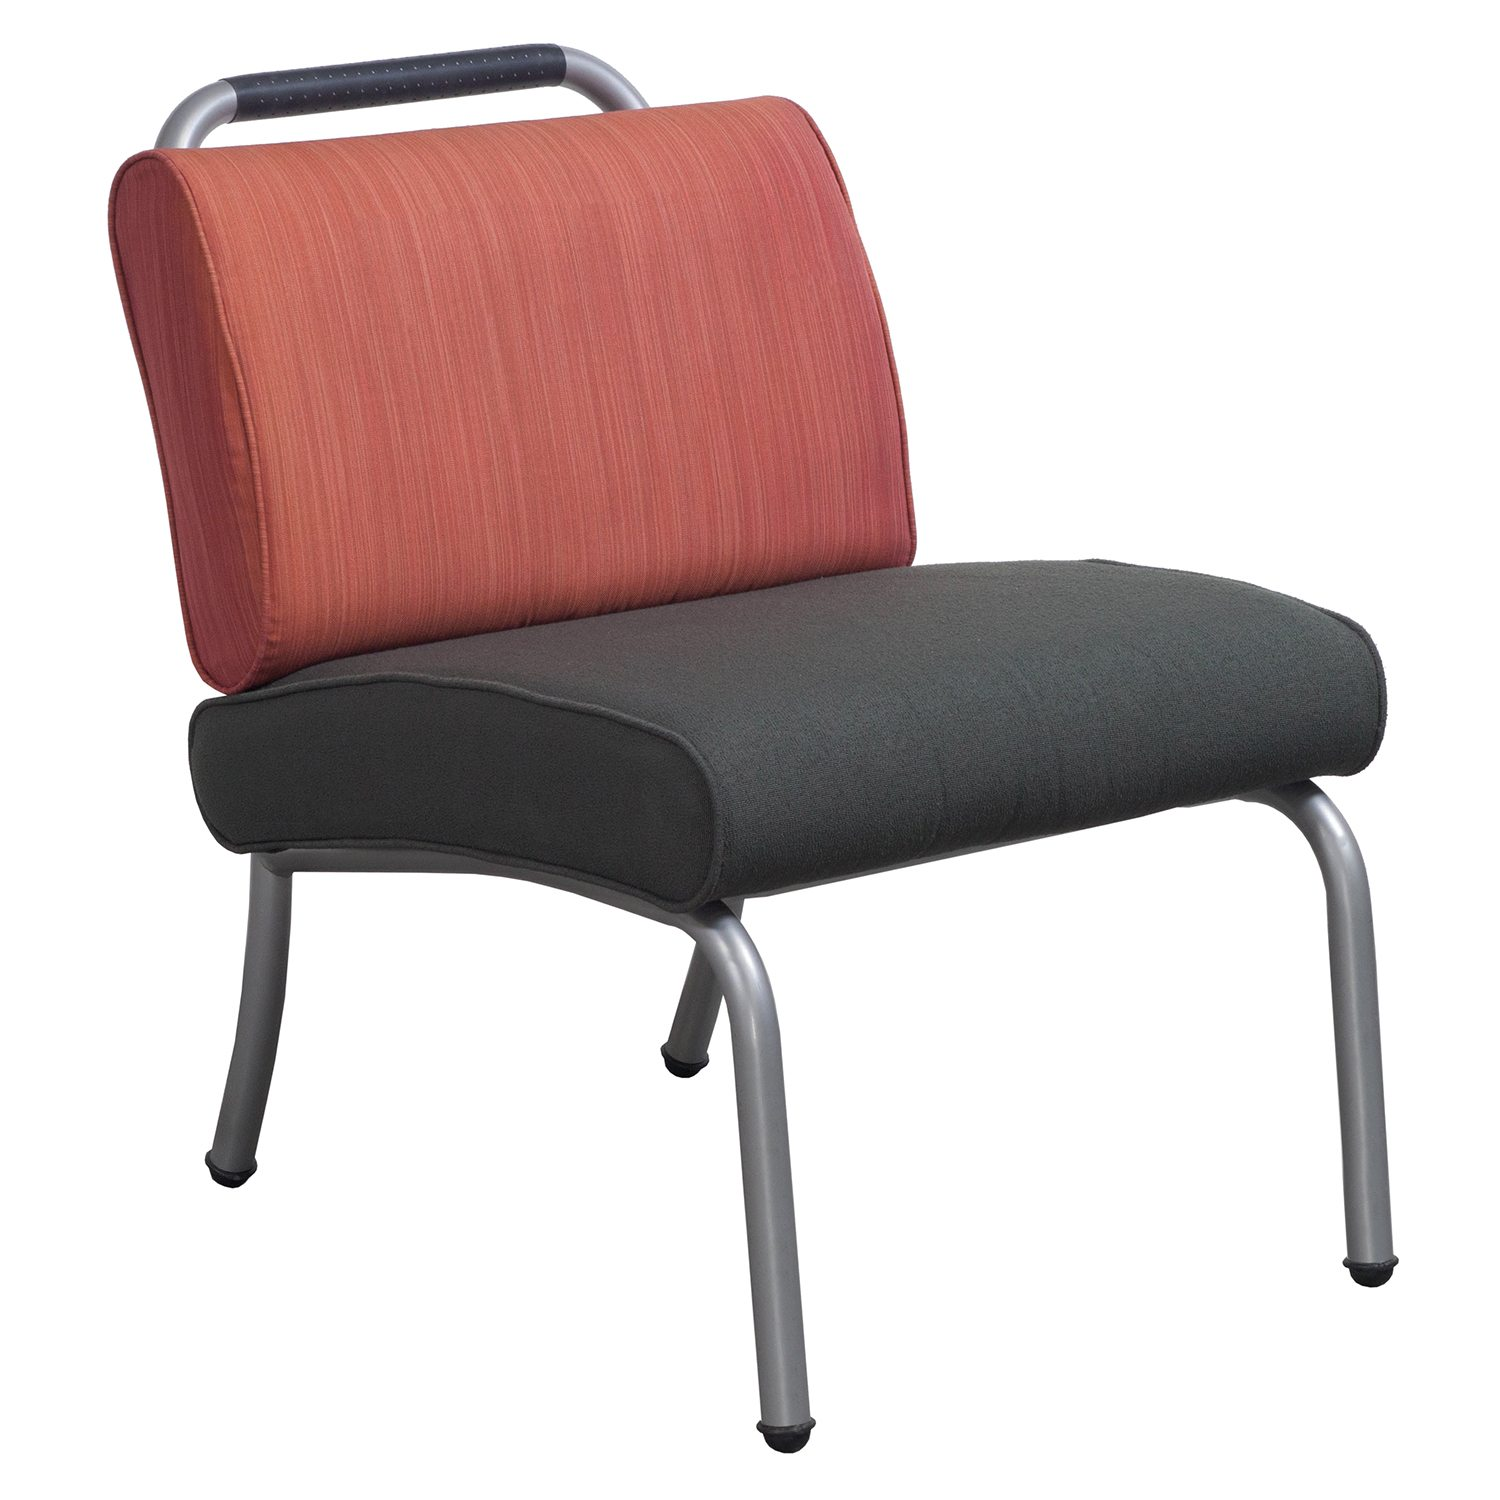 Steelcase Sweeper Used Lounge Chair, Rust/Charcoal